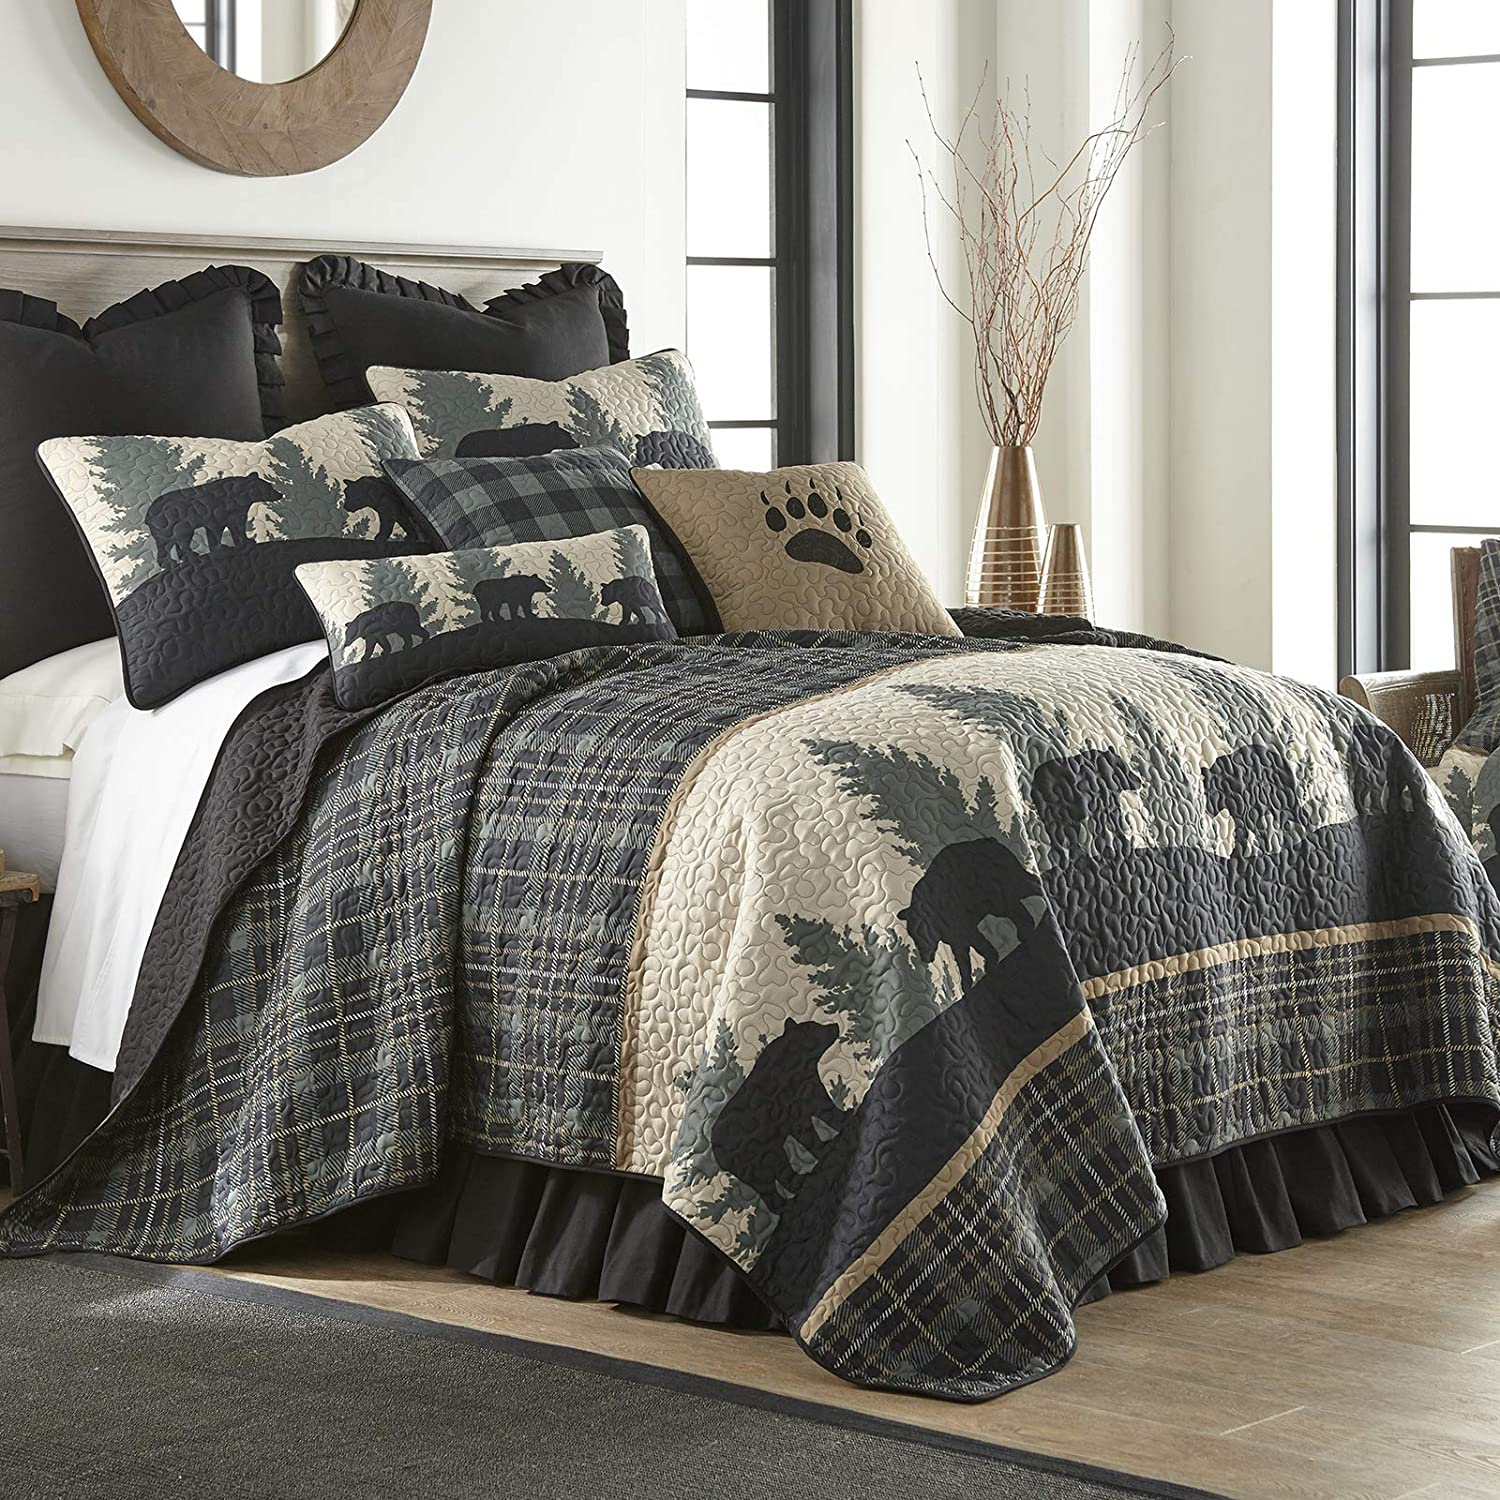 Donna Sharp King Bedding Set - 3 Piece - Bear Walk Plaid Lodge Quilt Set with King Quilt and Two Standard Pillow Shams - Machine Washable